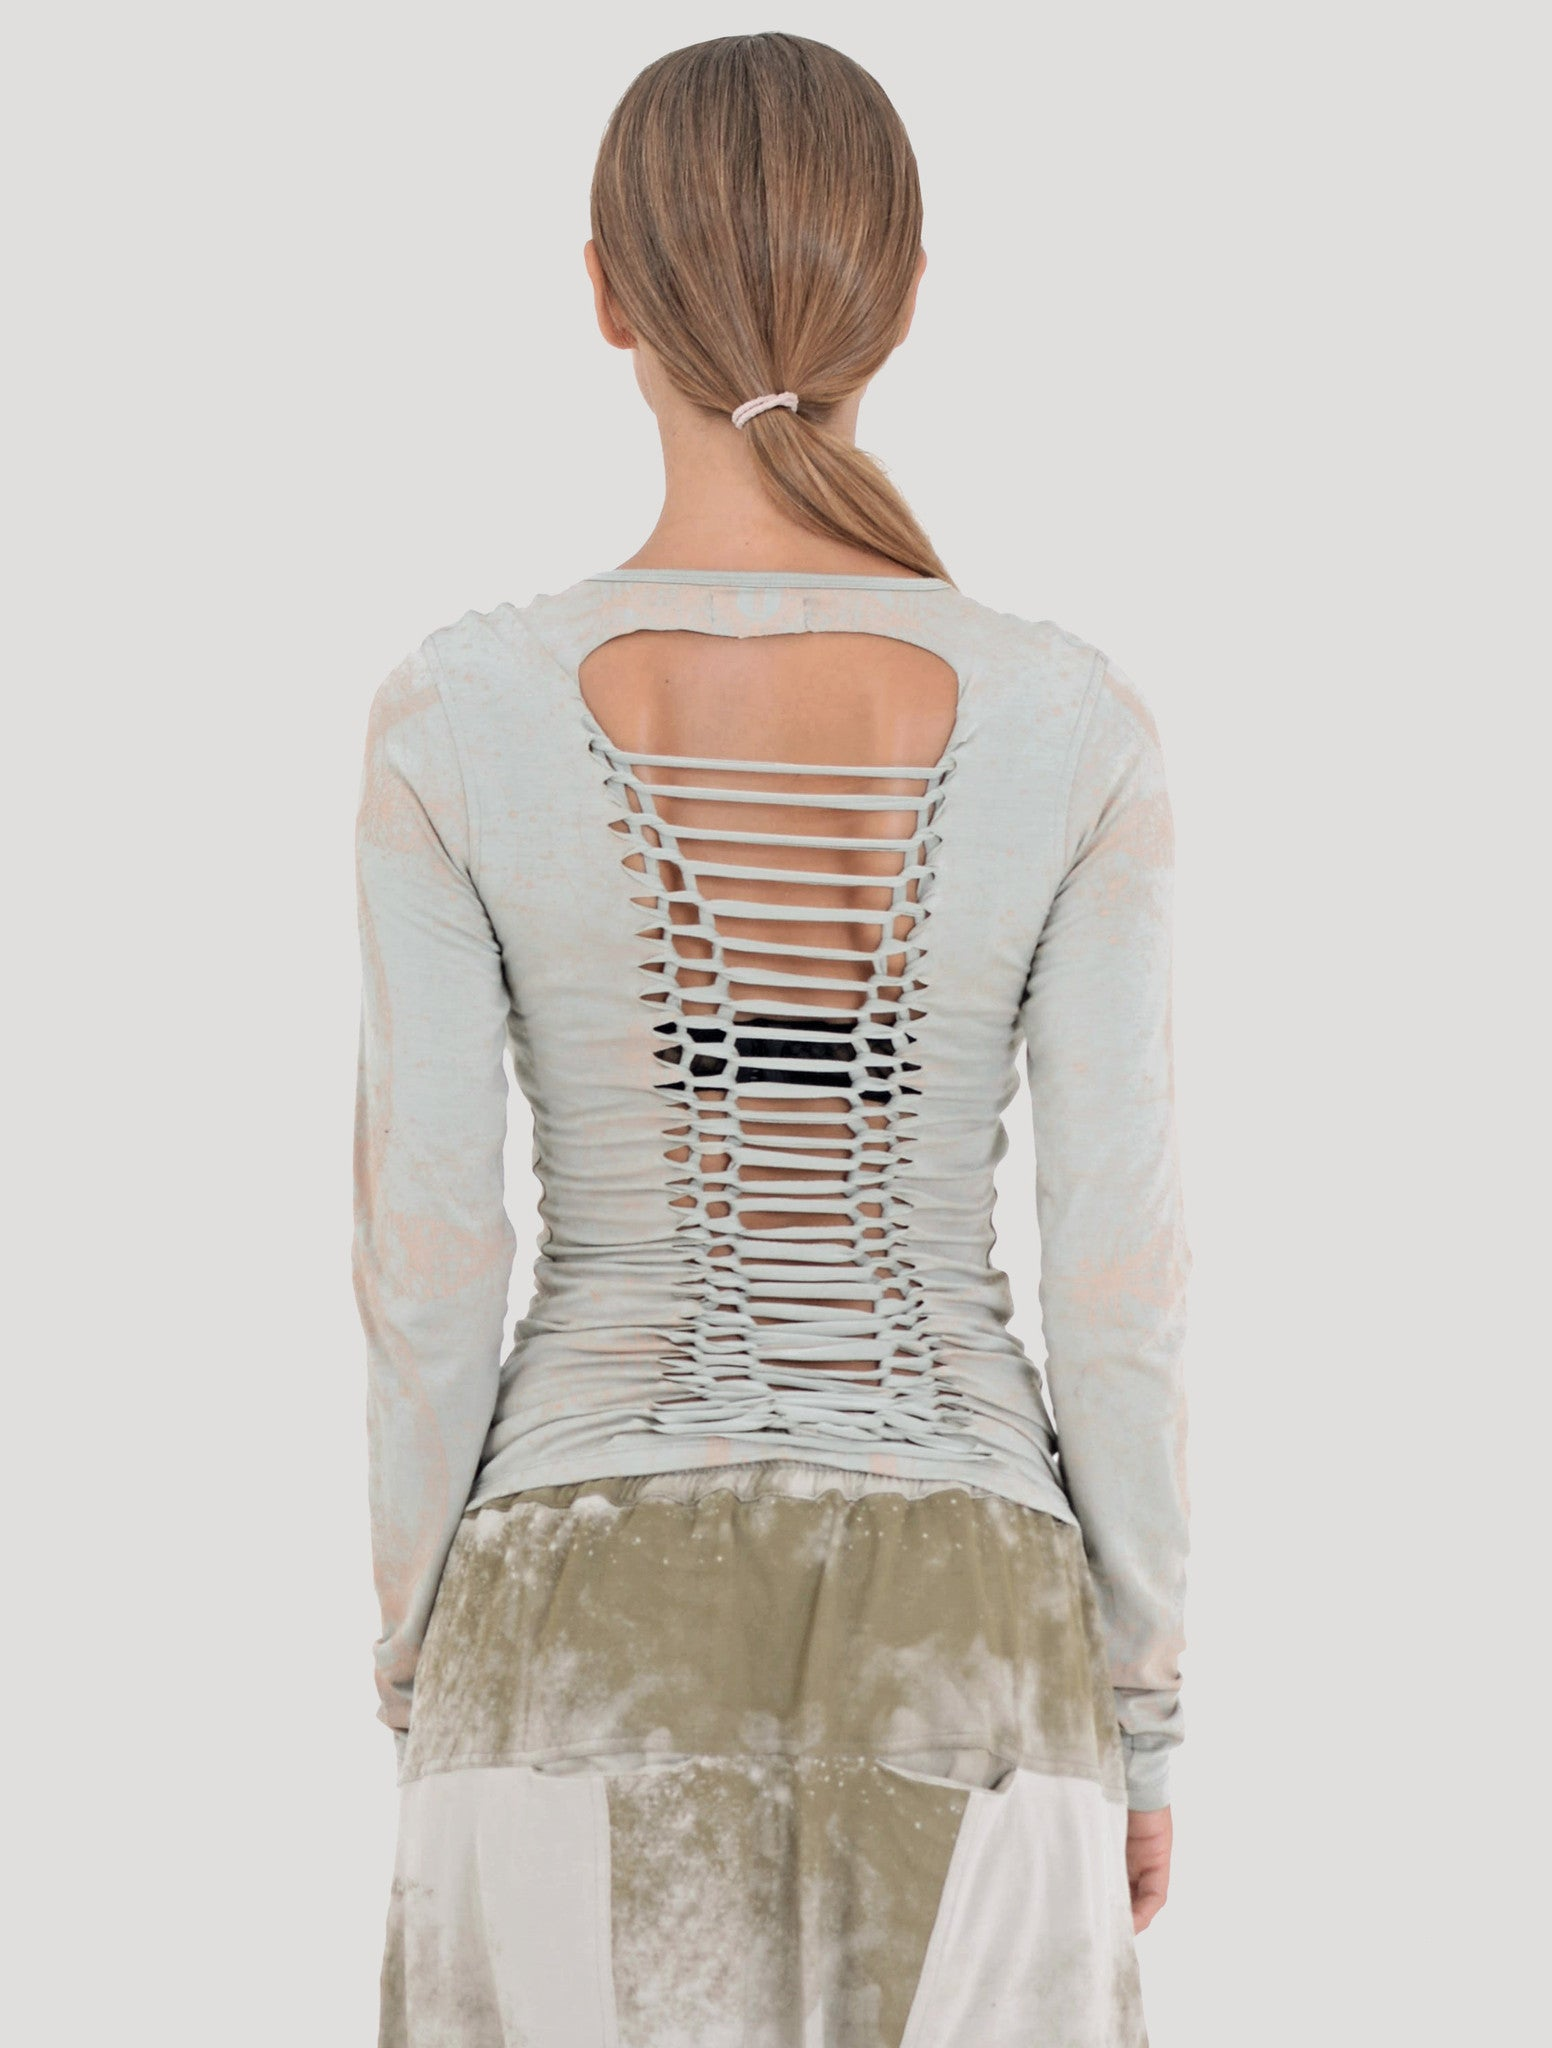 Atlantis  Braided Long Sleeves Top - Psylo